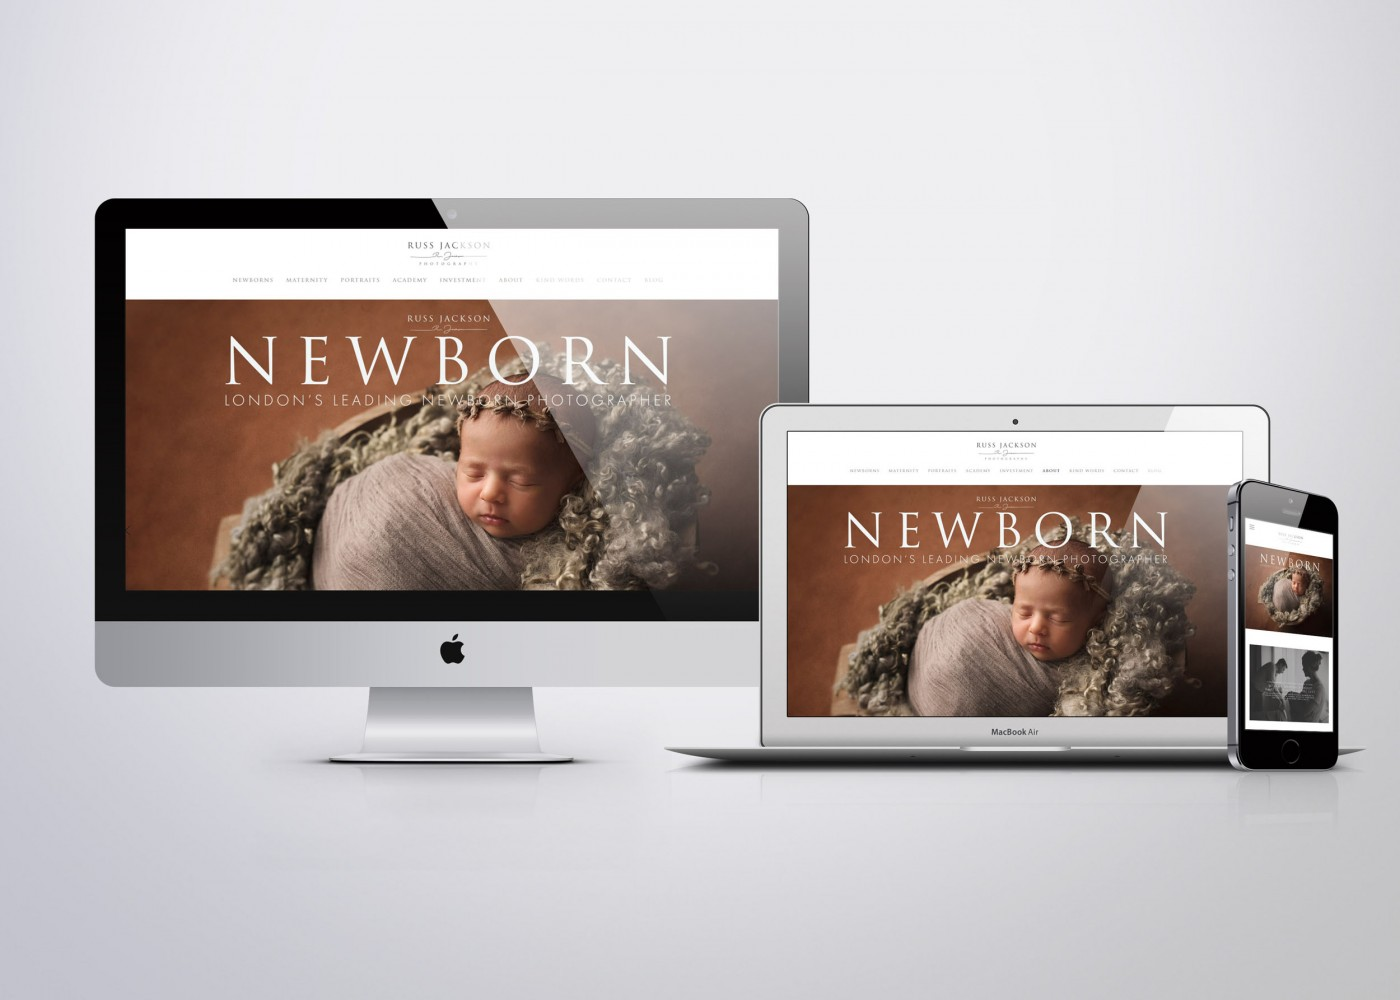 russ-jackson-photography Newborn photography website